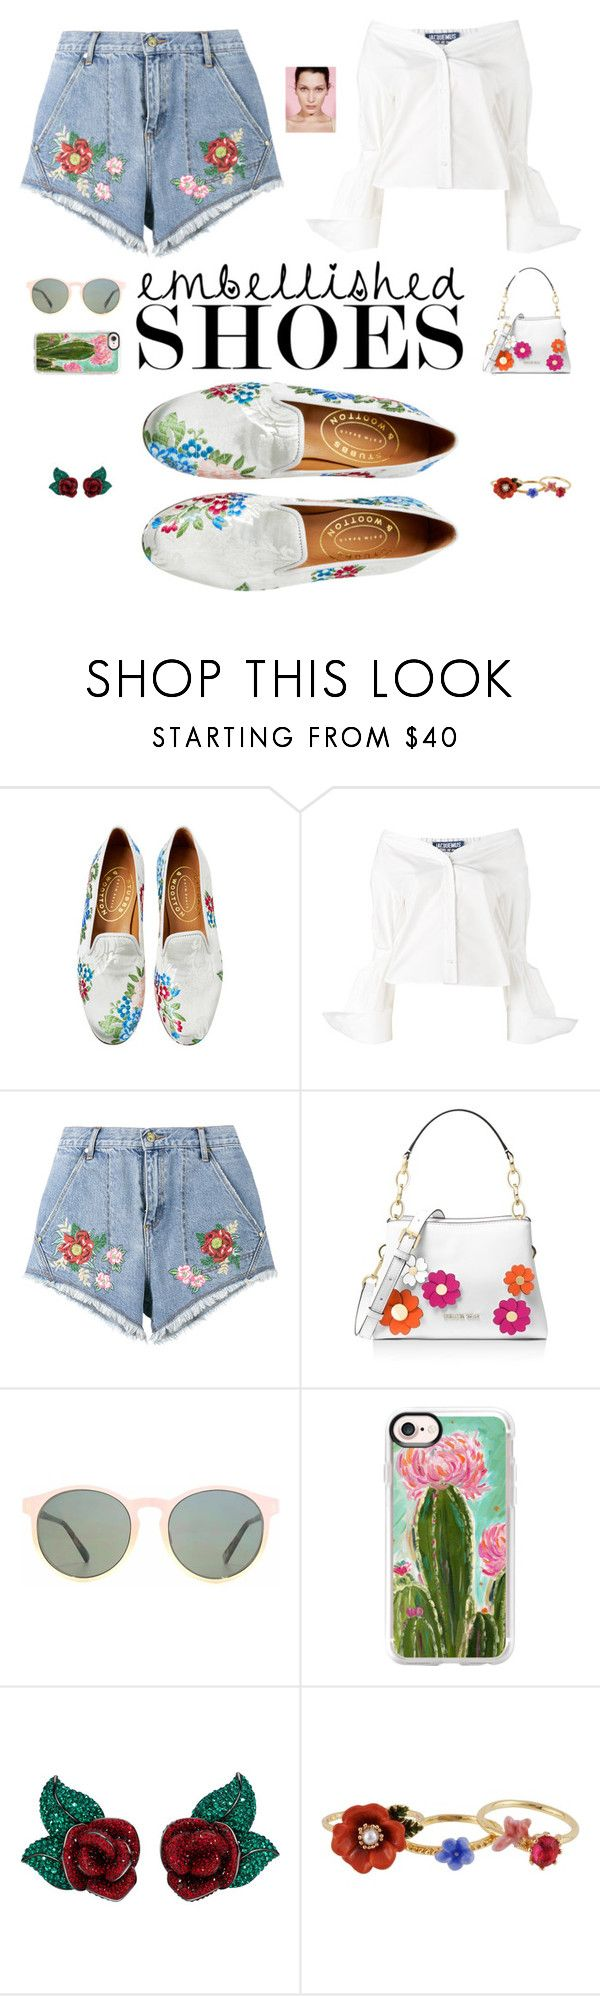 """#embellishedshoes"" by rrenitha ❤ liked on Polyvore featuring Jacquemus, House of Holland, MICHAEL Michael Kors, HOOK LDN, Casetify, Atelier Swarovski and Les Néréides"